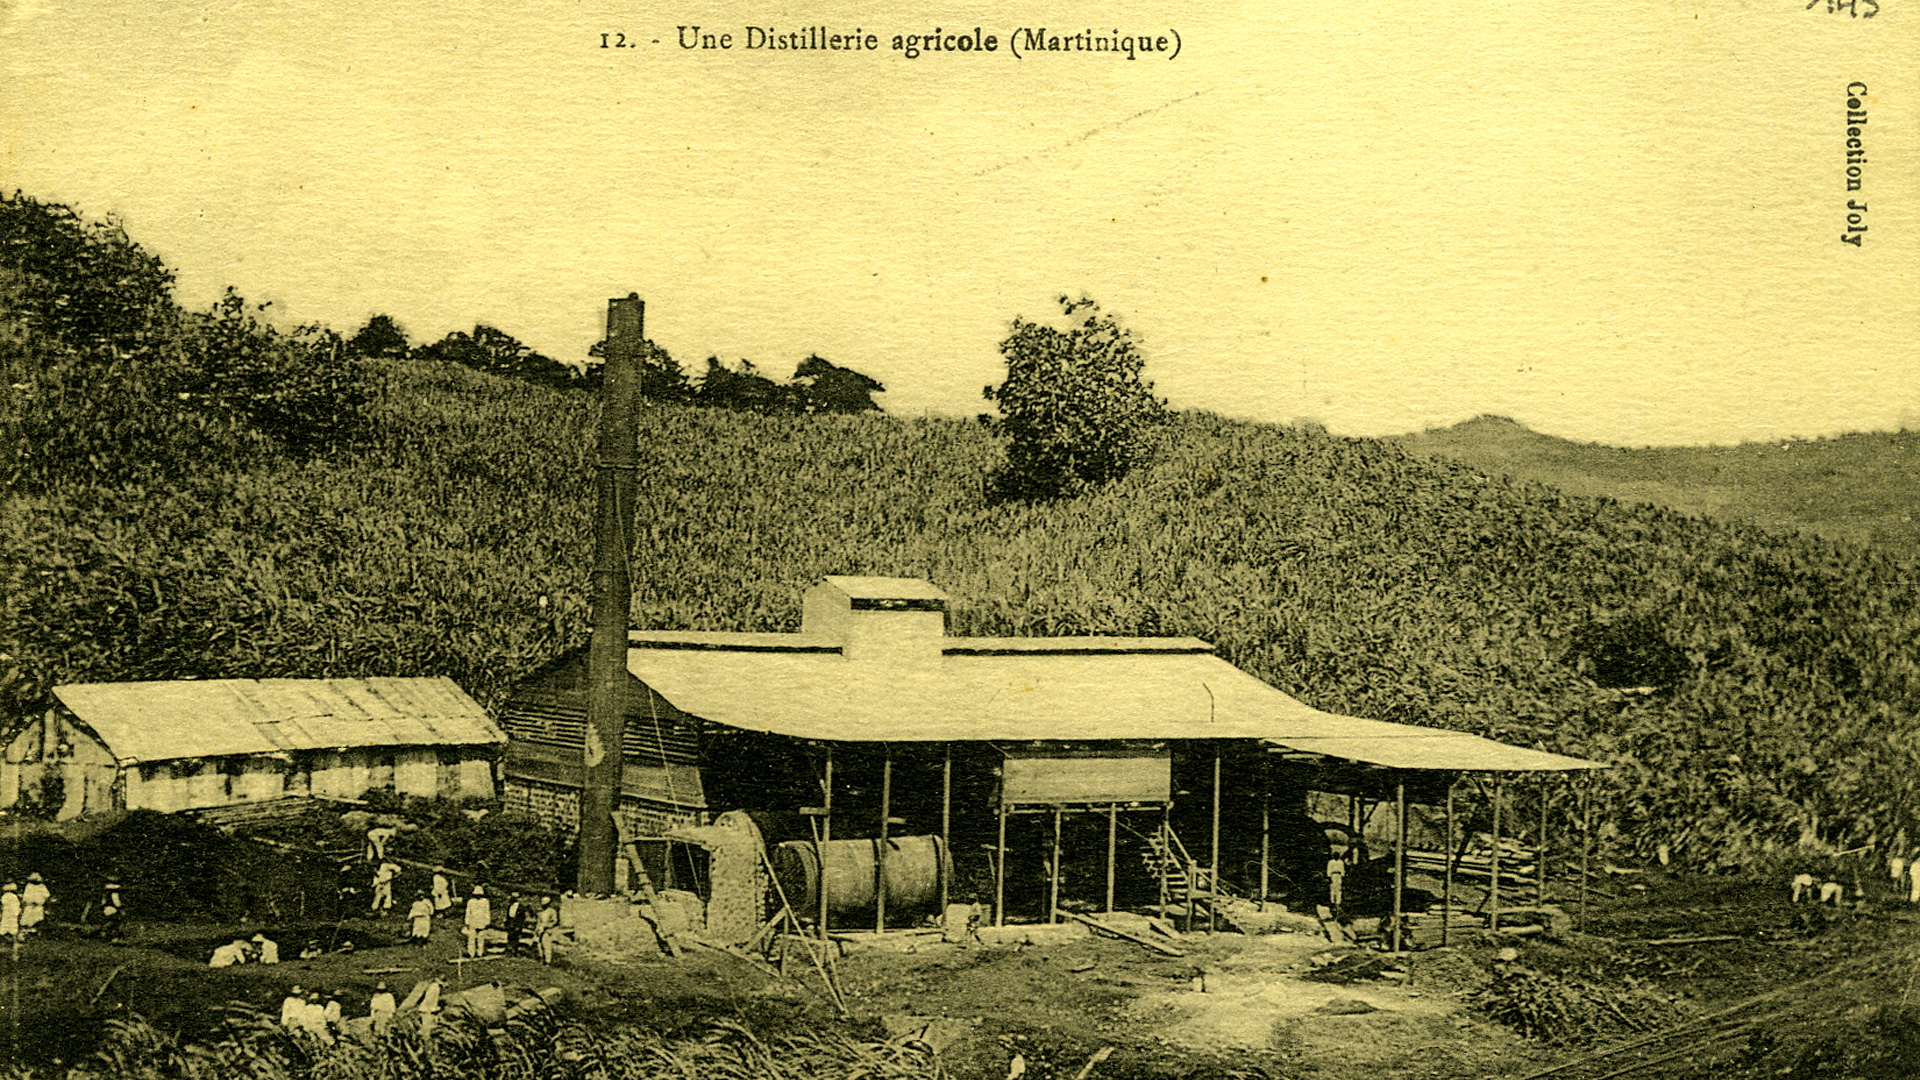 Distillerie agricole (martinique)